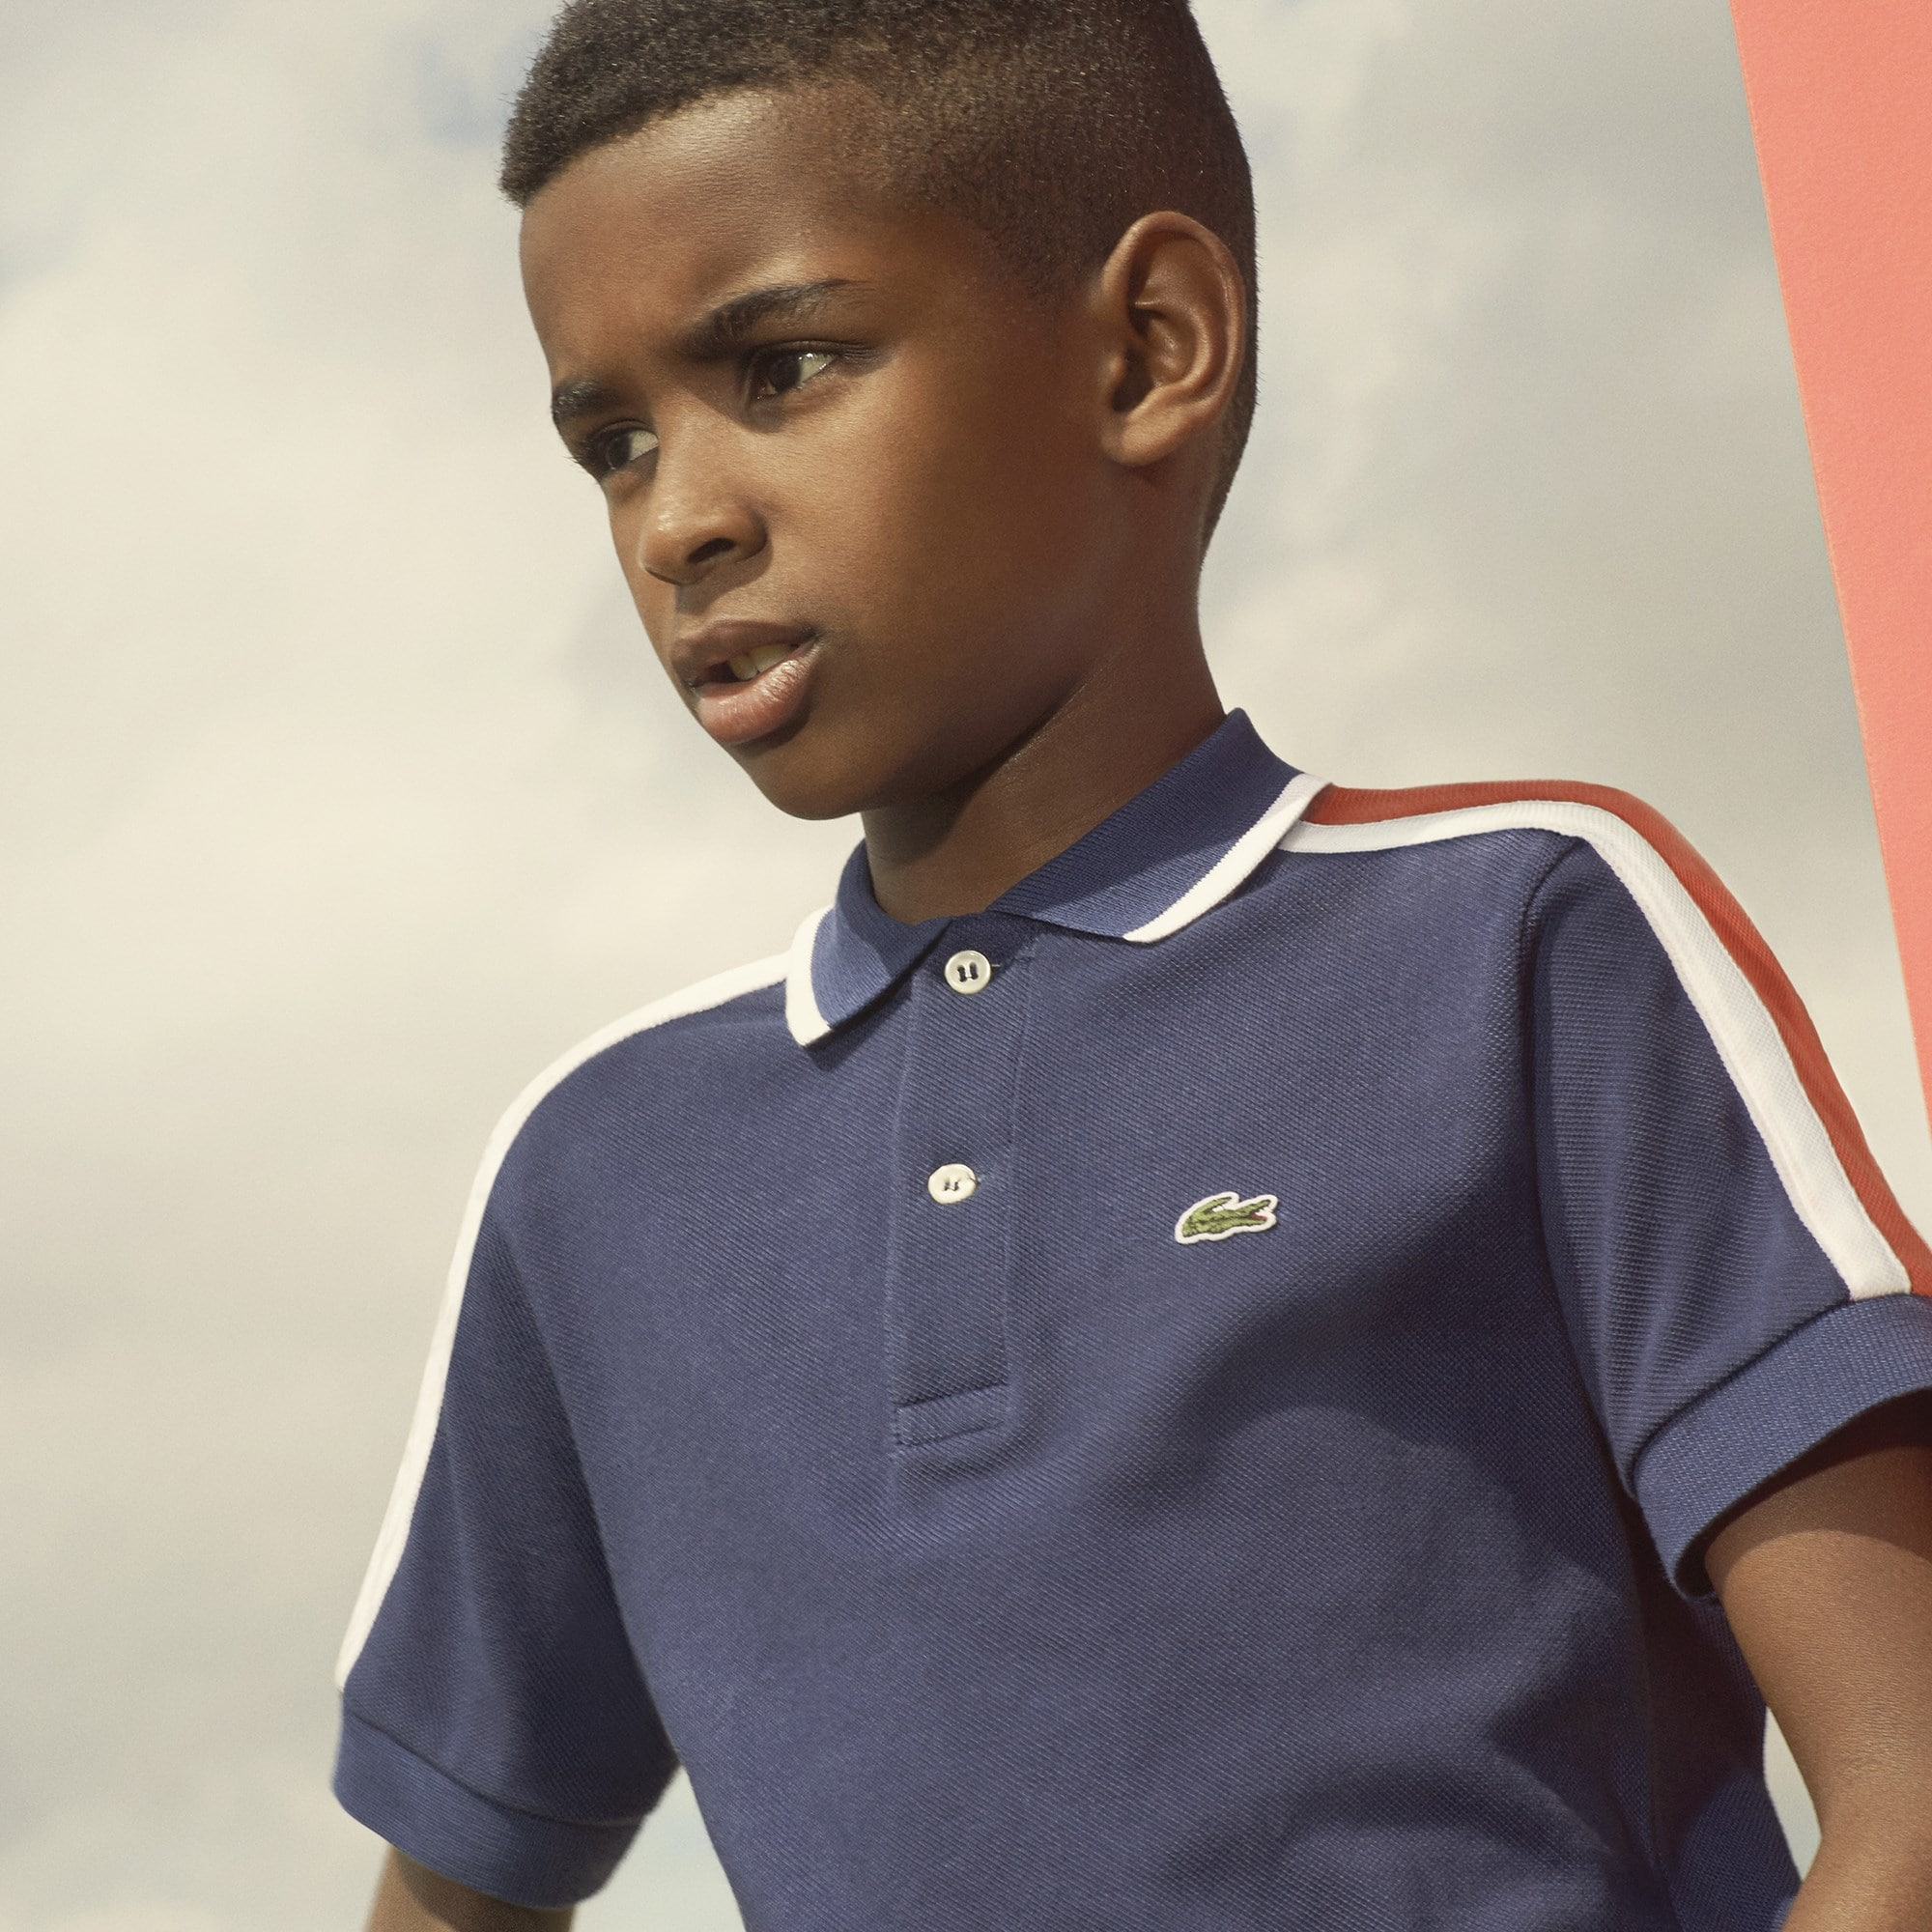 Boys' Lacoste Colorblock Bands Petit Piqué Polo Shirt